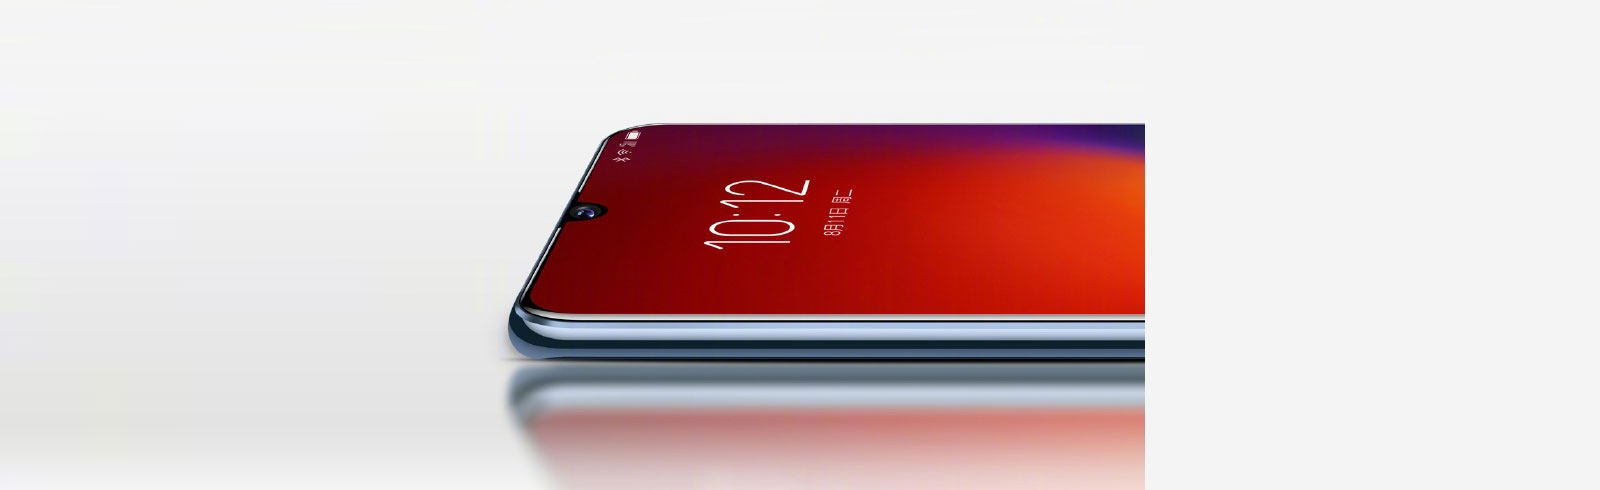 Lenovo Z6 will have a 6.39-inch OLED display with HDR10 support and under-display fingerprint sensor